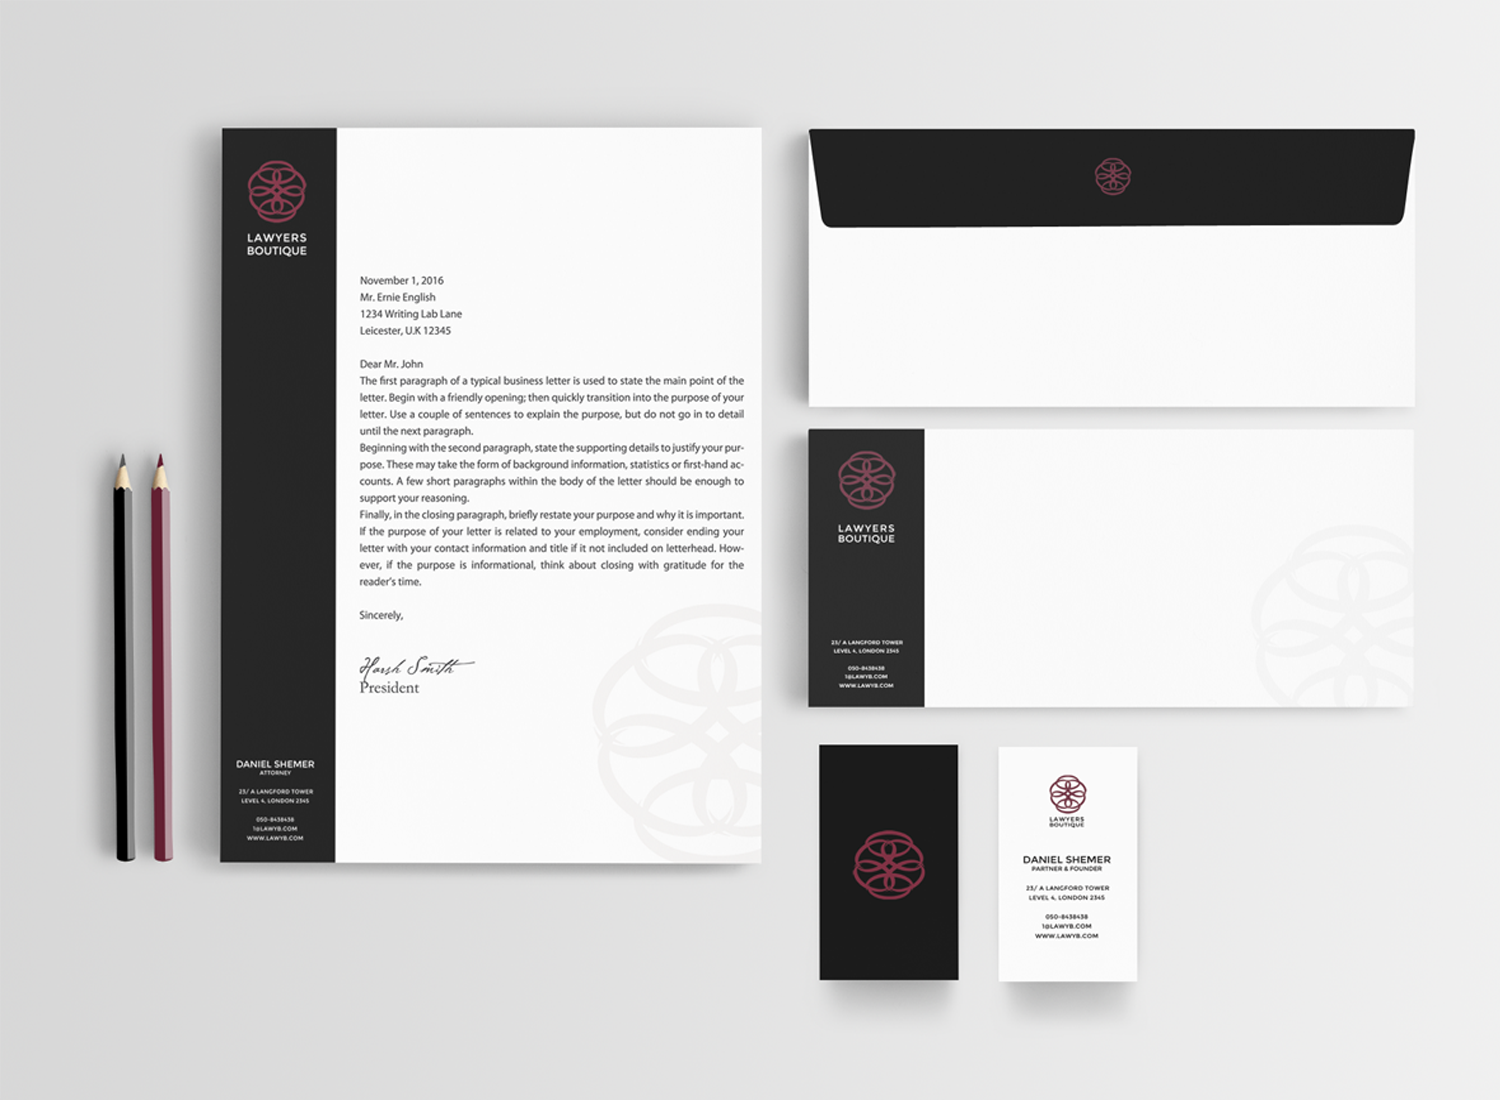 Professional, Upmarket, Law Firm Stationery Design for a Company by